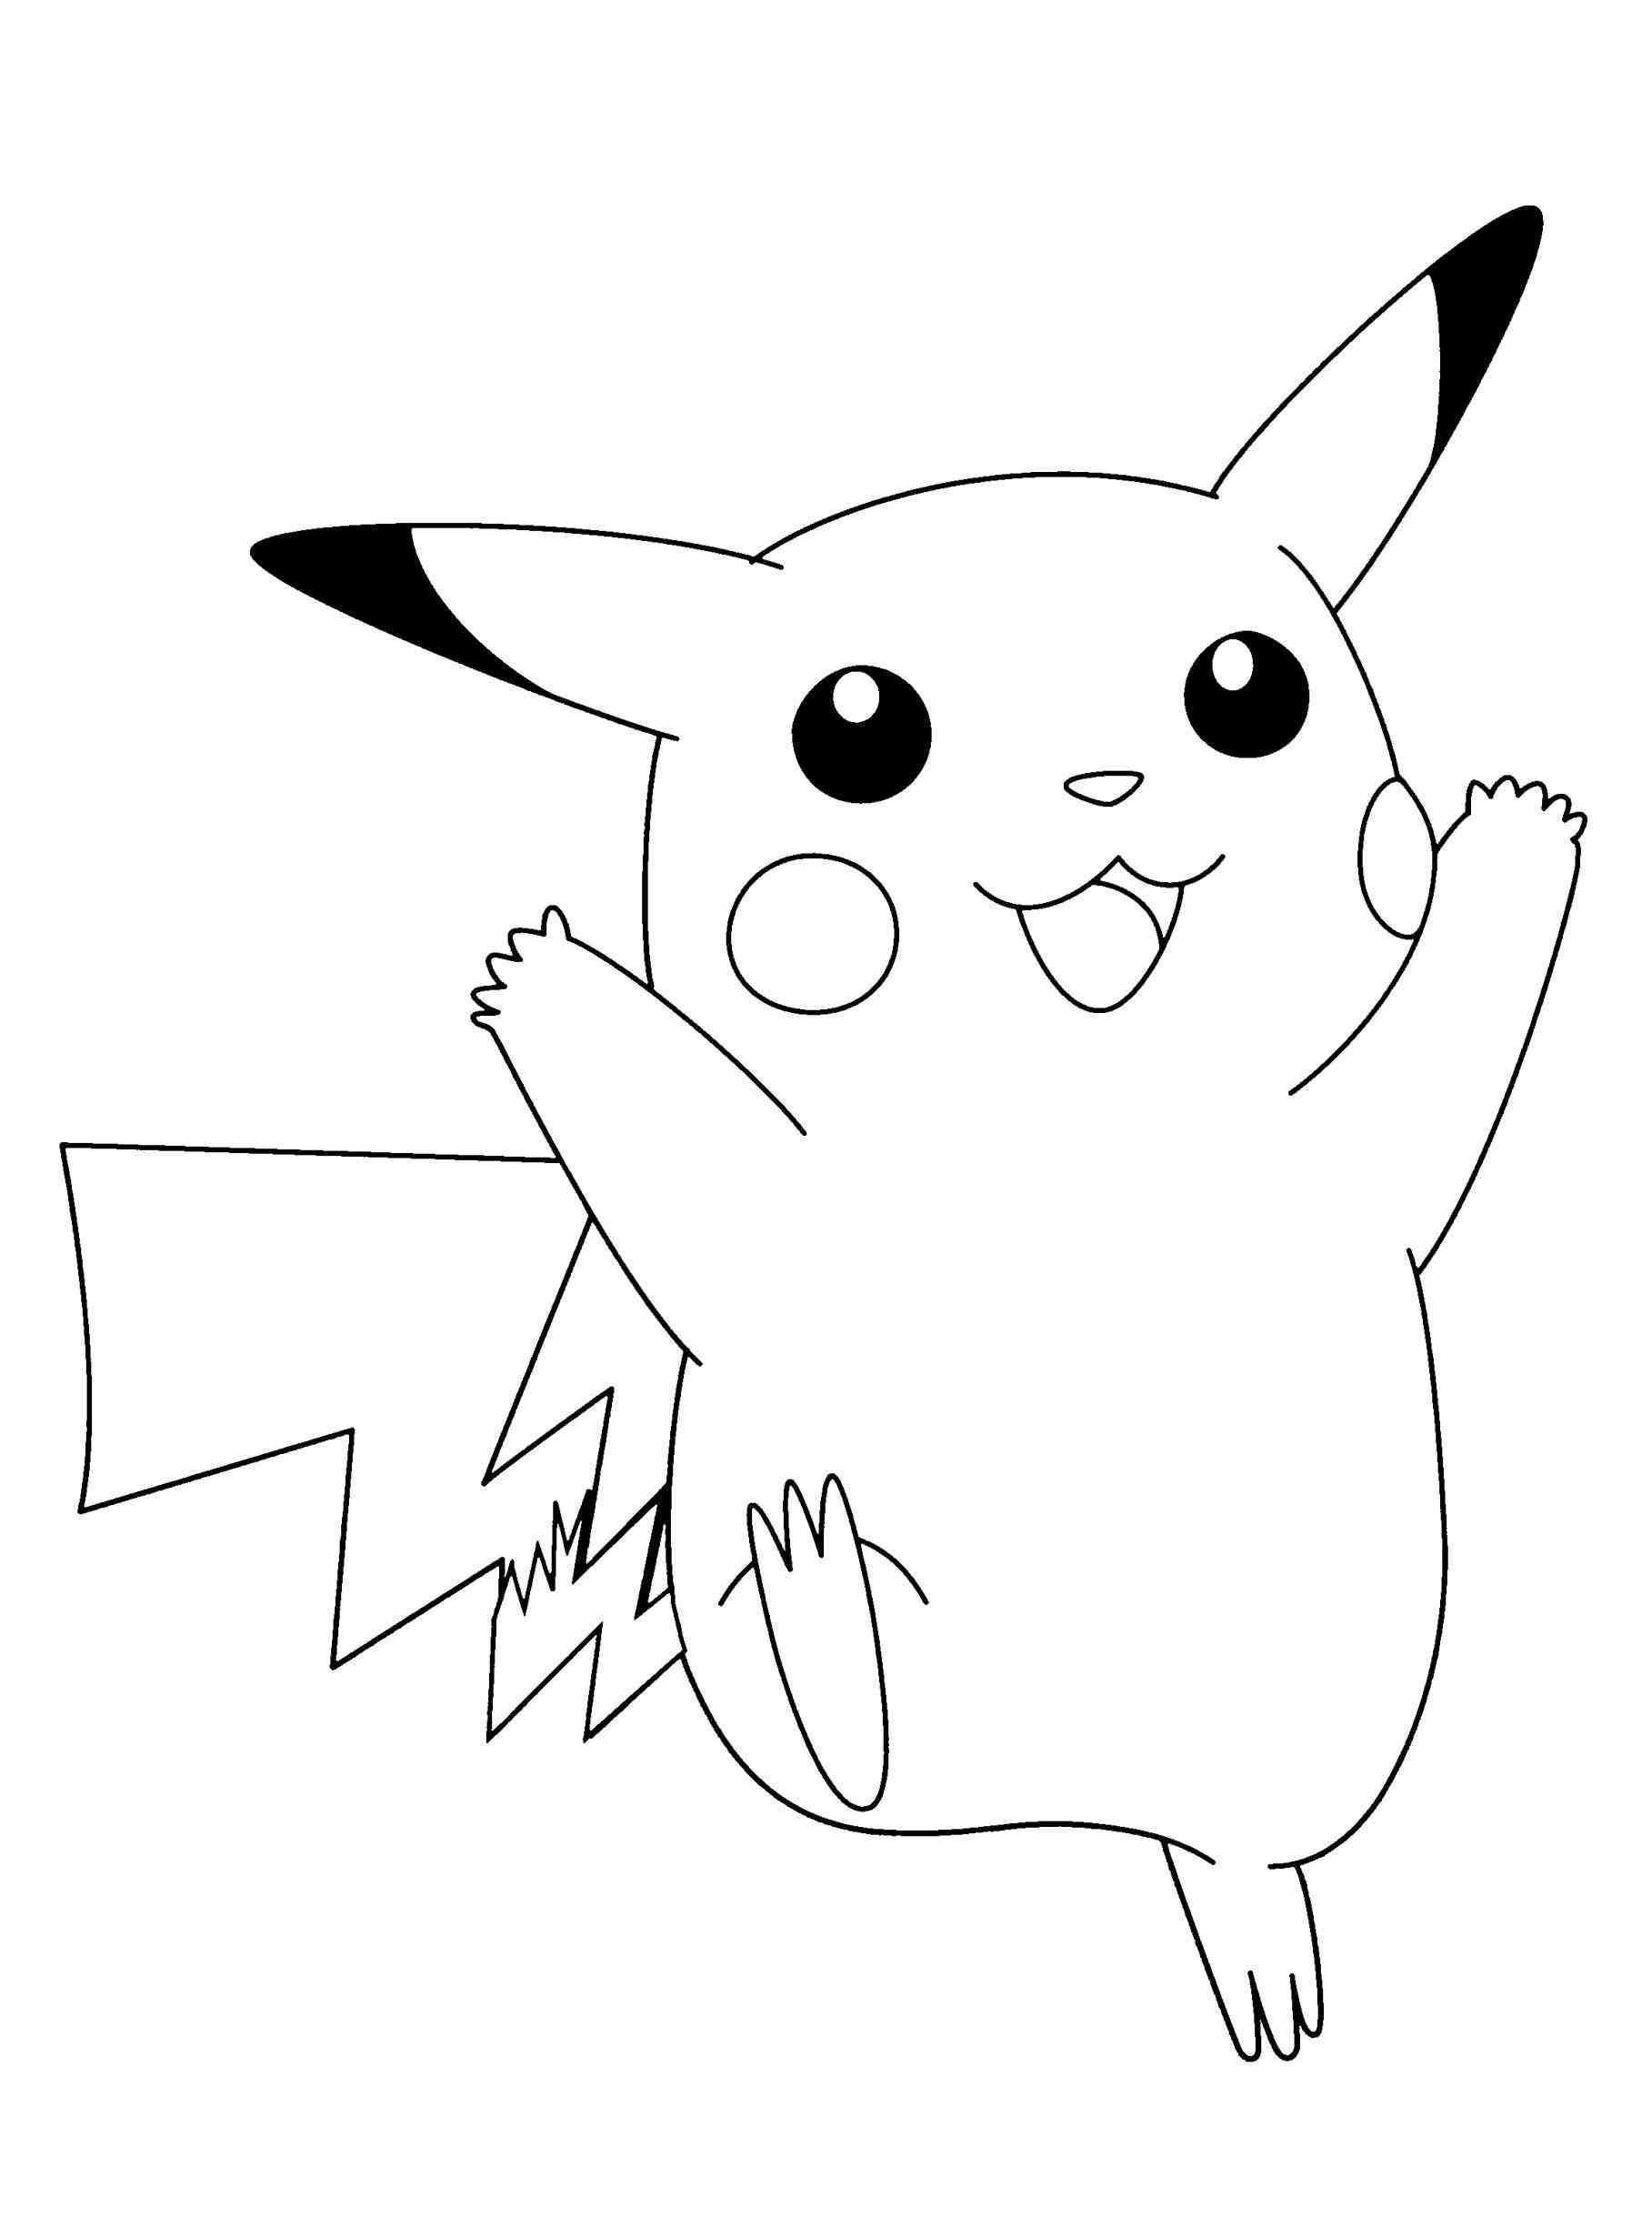 Coloring Pages Is Listed In Our Pokemon White Kyurem Coloring